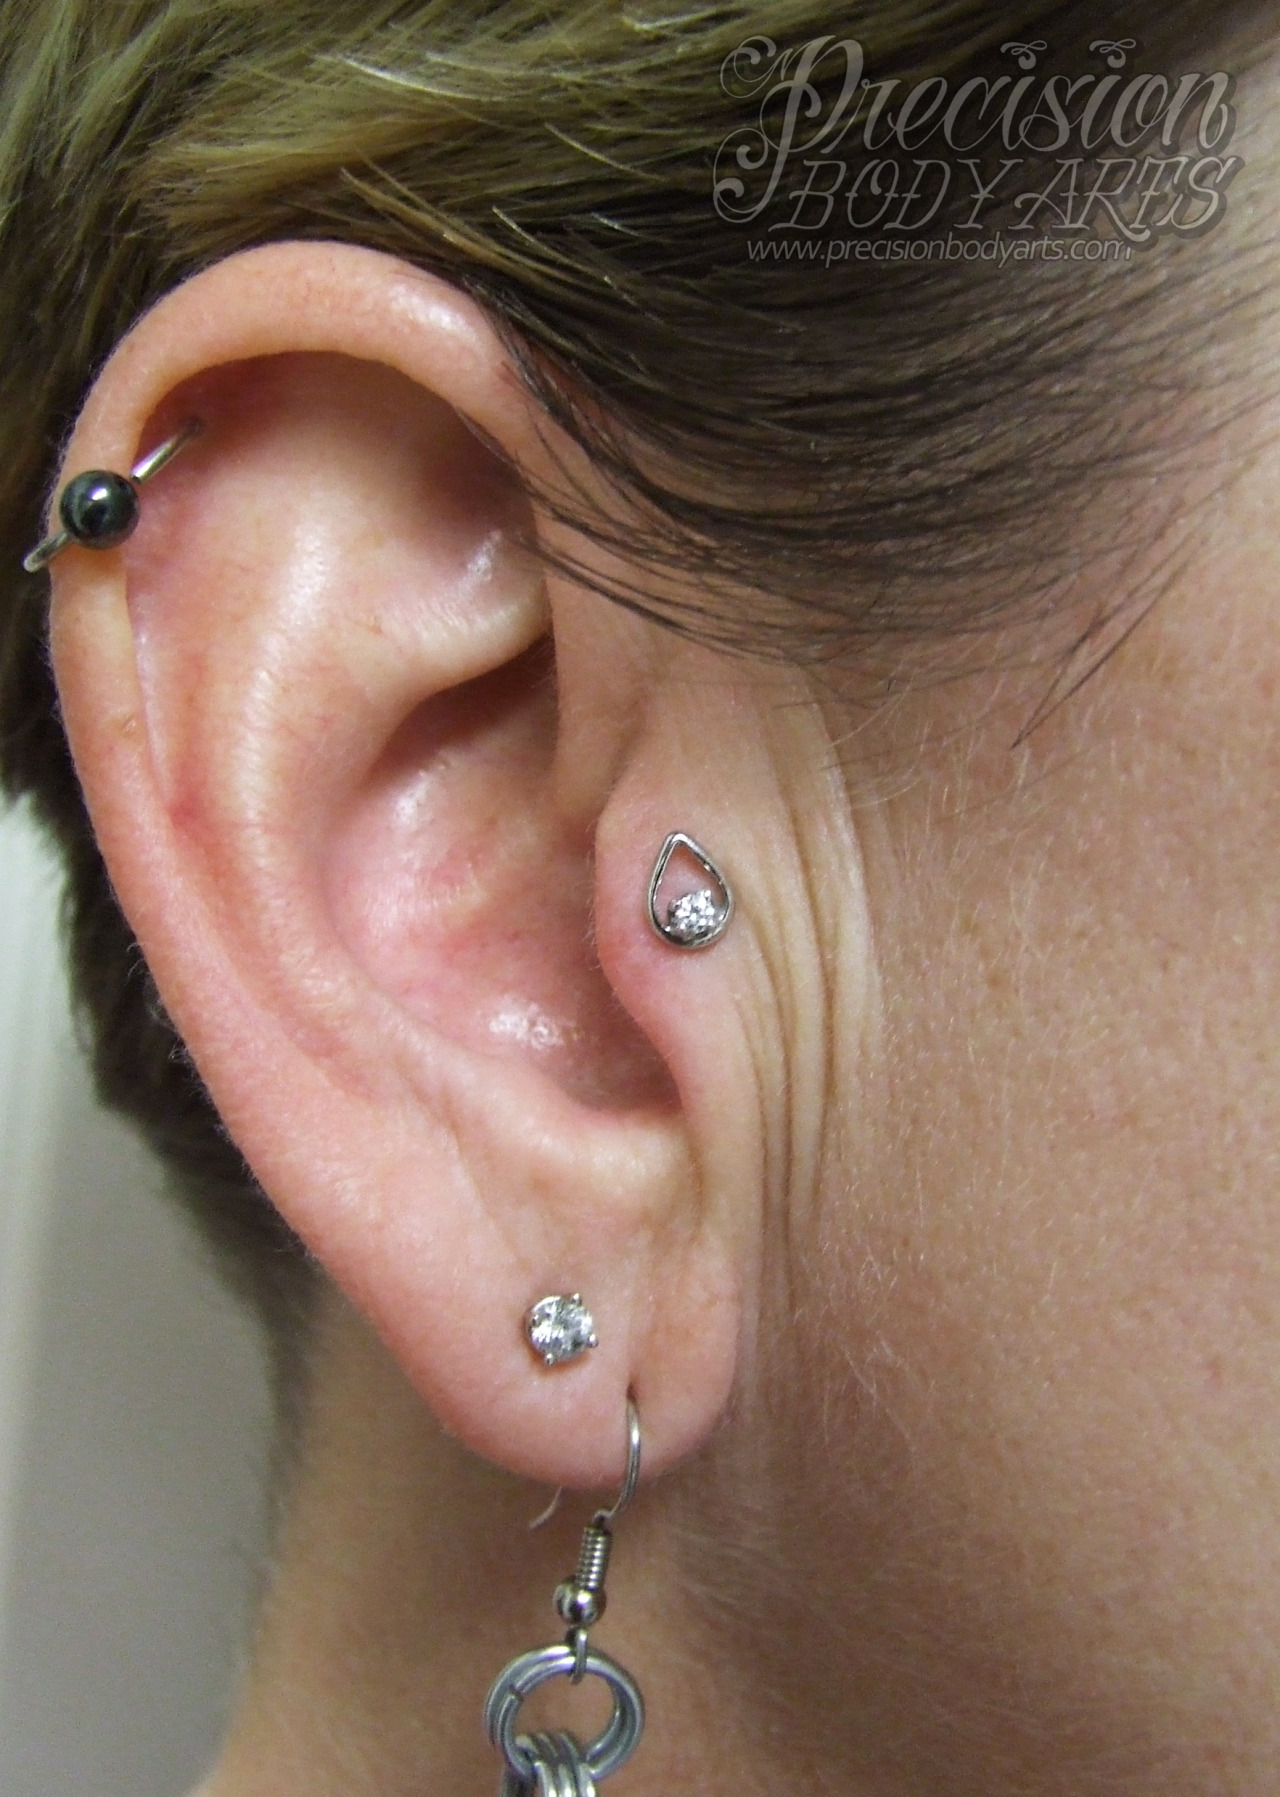 Tragus piercing by Ryan Ouellette. Precision Body Arts in Nashua, New Hampshire. Jewelry by Body Vision.